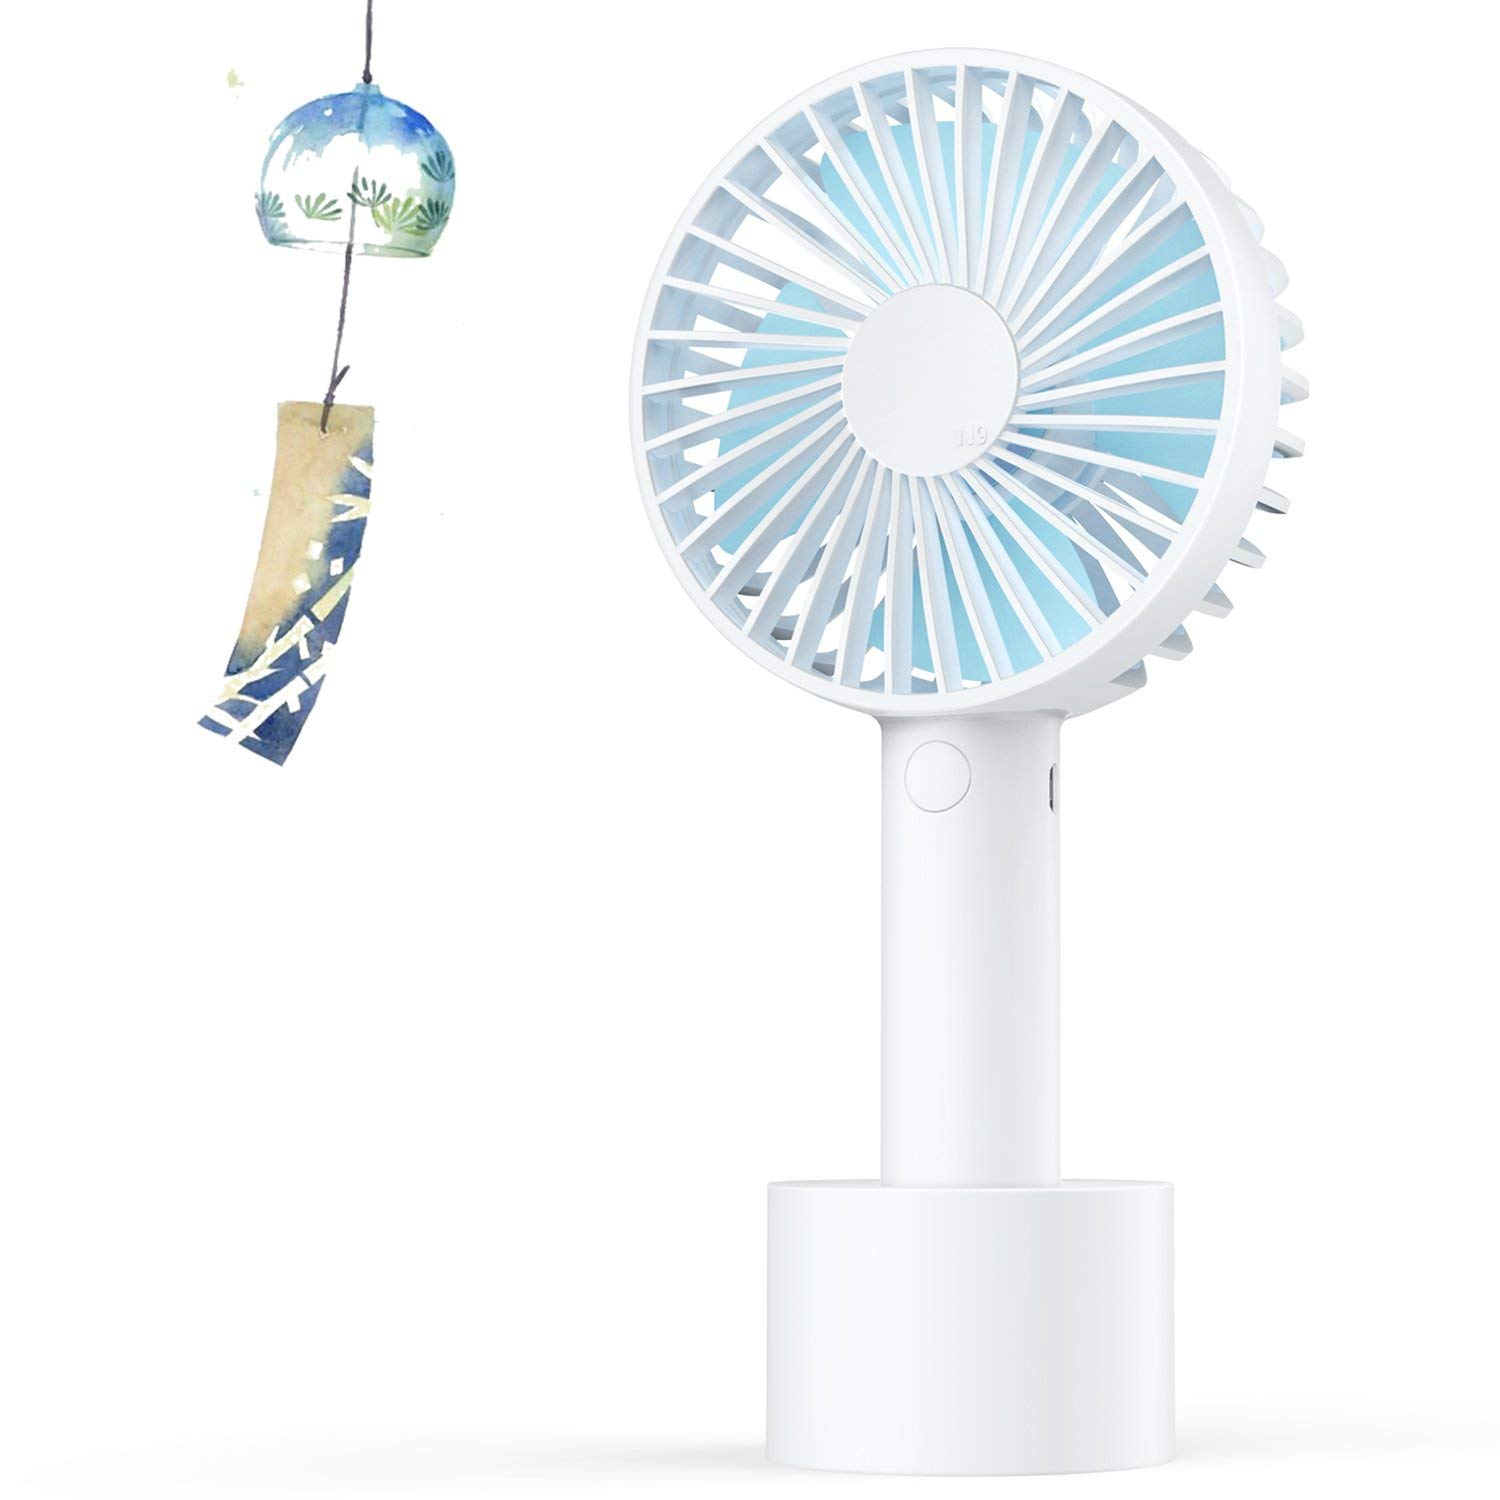 Elechomes Mini Handheld Fan, Personal Portable Desk Stroller Table Fan with USB Rechargeable Battery Operated Cooling Folding Electric Fan for Office Room Outdoor Household Traveling(3 Speed,White) product image